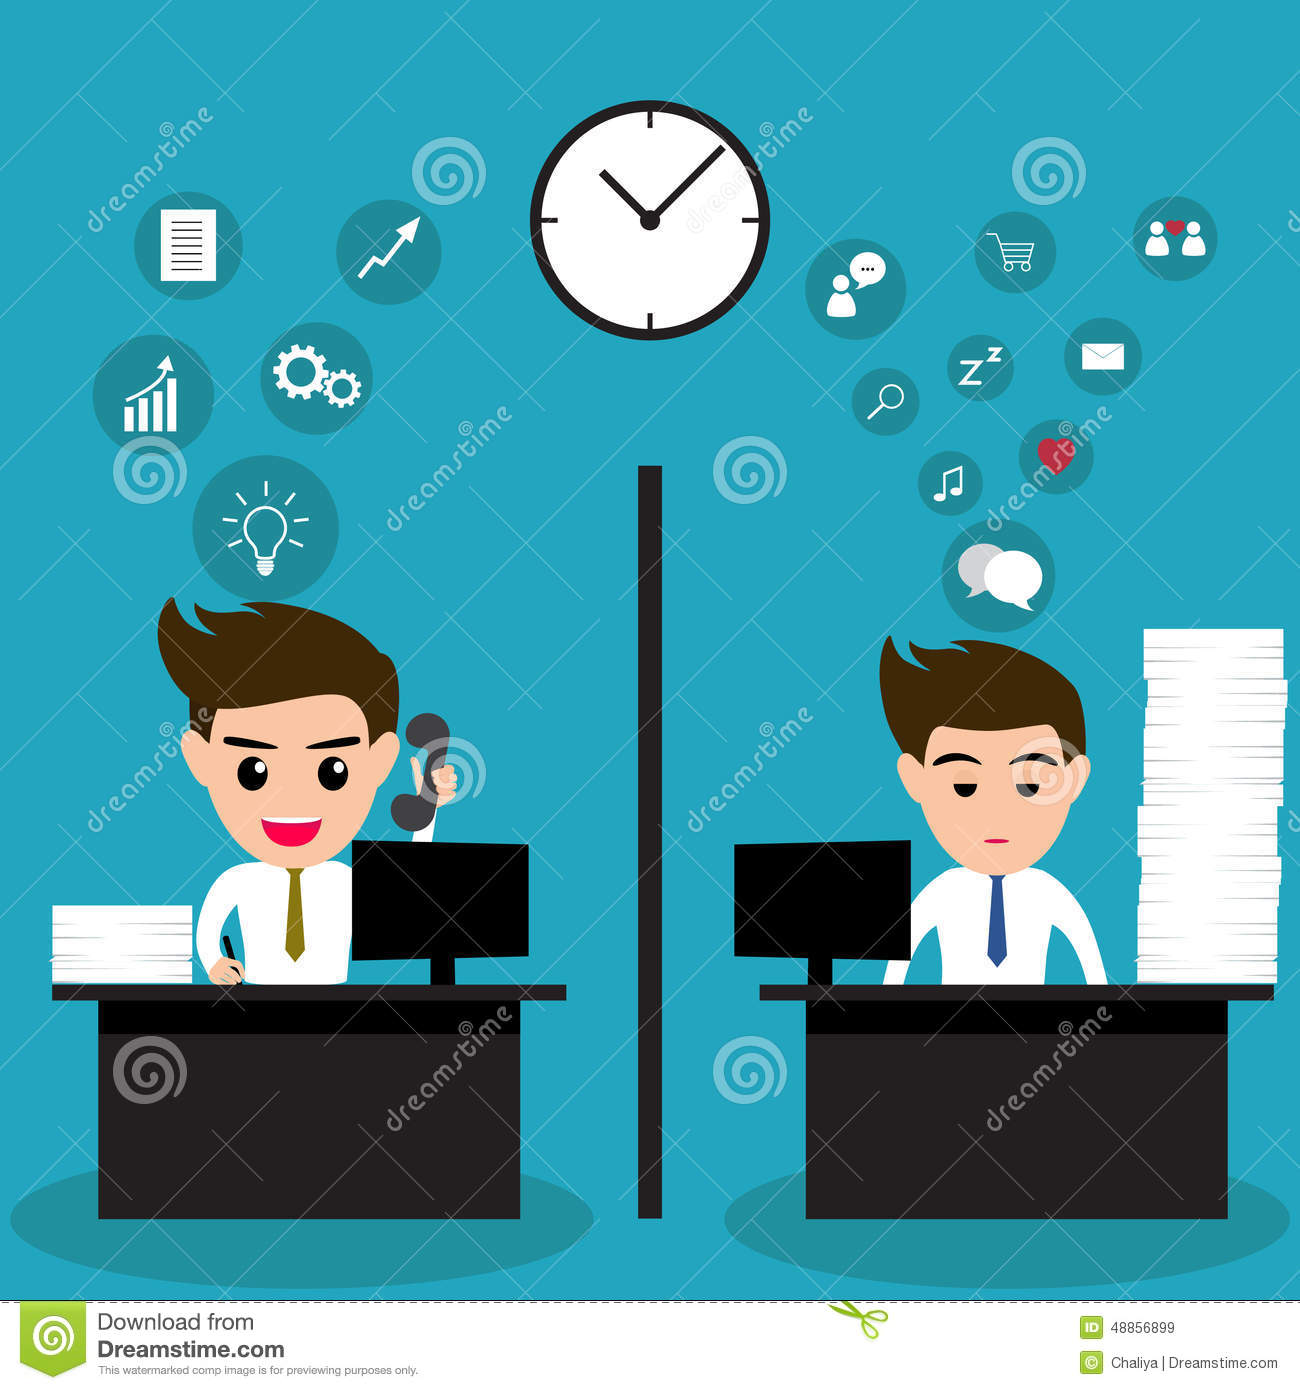 lazy-business-man-active-business-man-same-office-vector-illusttration-48856899.jpg